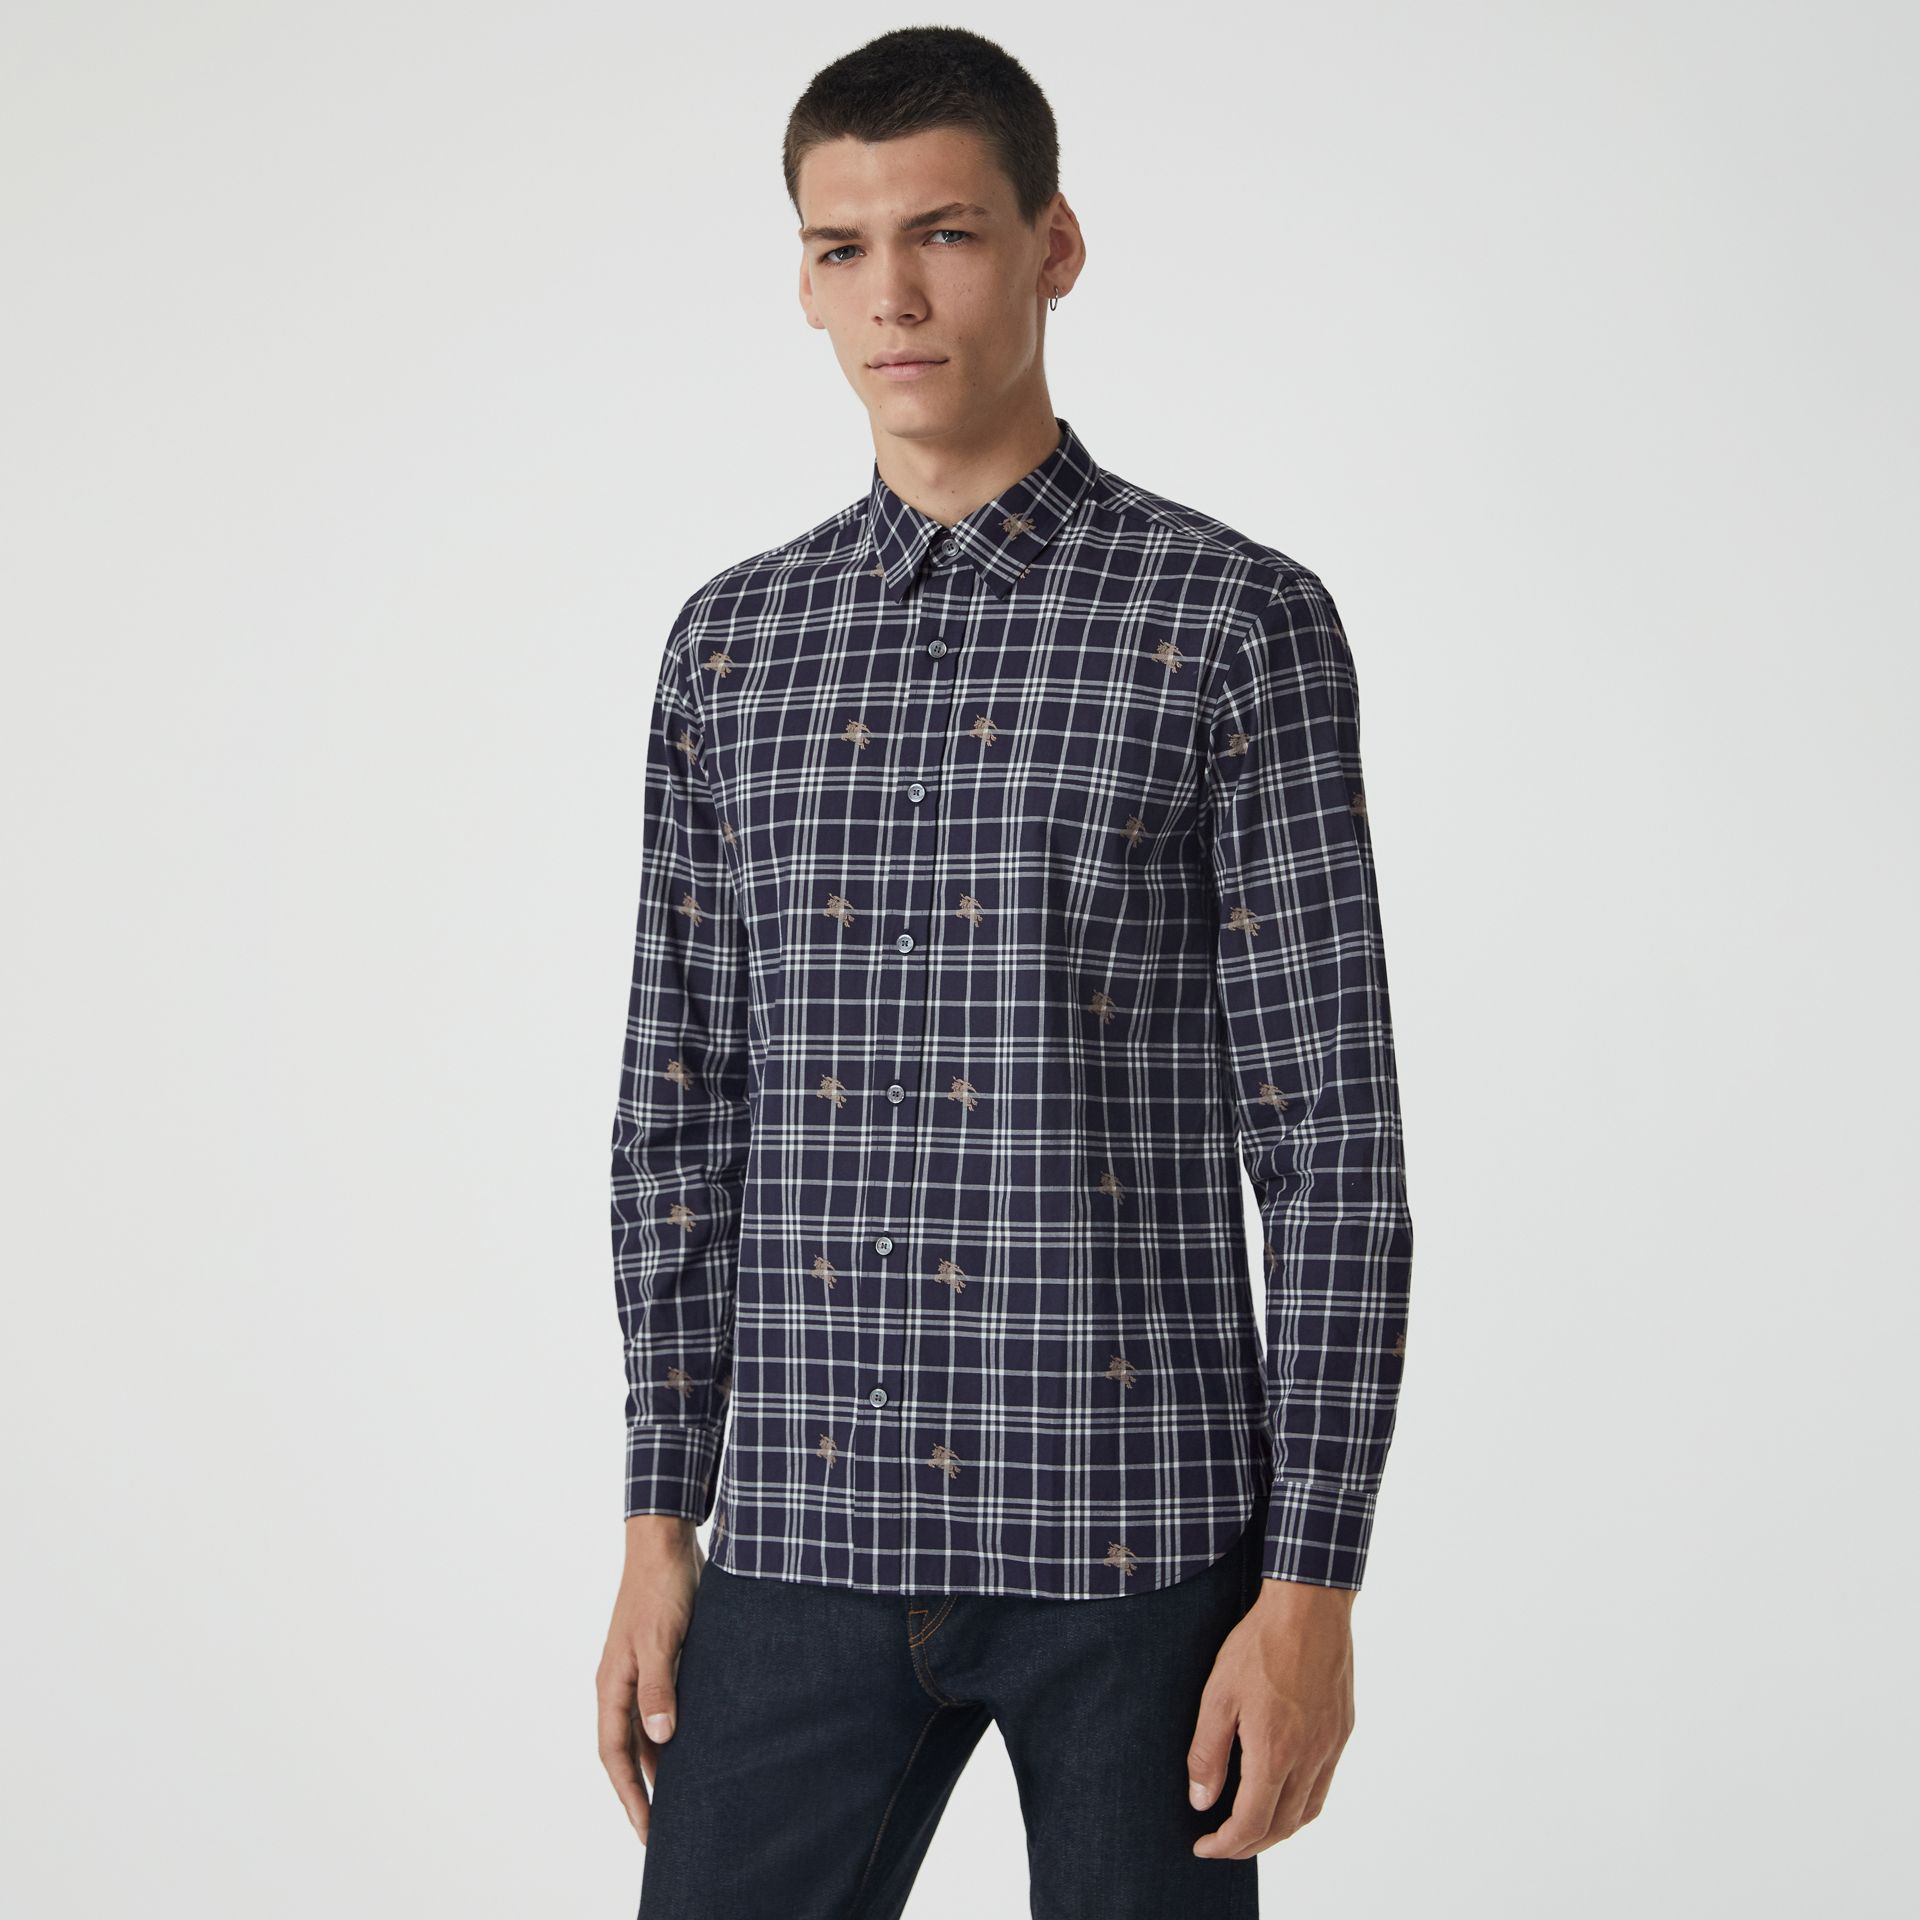 Equestrian Knight Check Cotton Shirt in Navy - Men | Burberry Australia - gallery image 0